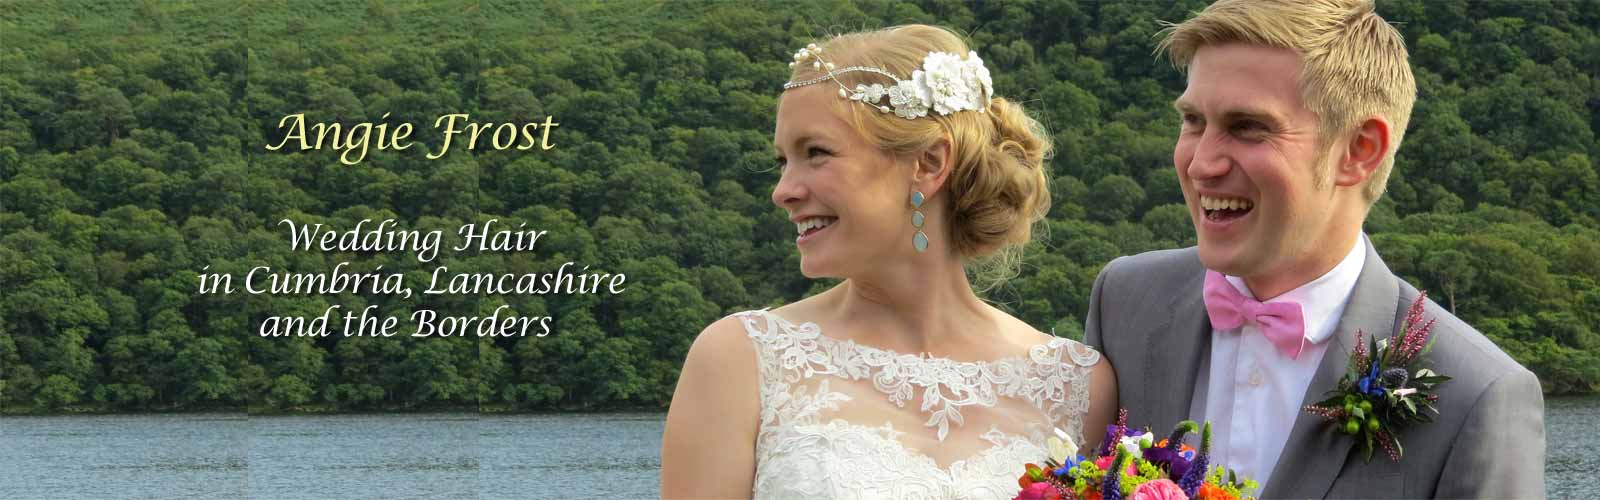 wedding hair by angie frost hairdresser pooley bridge penrith cumbria